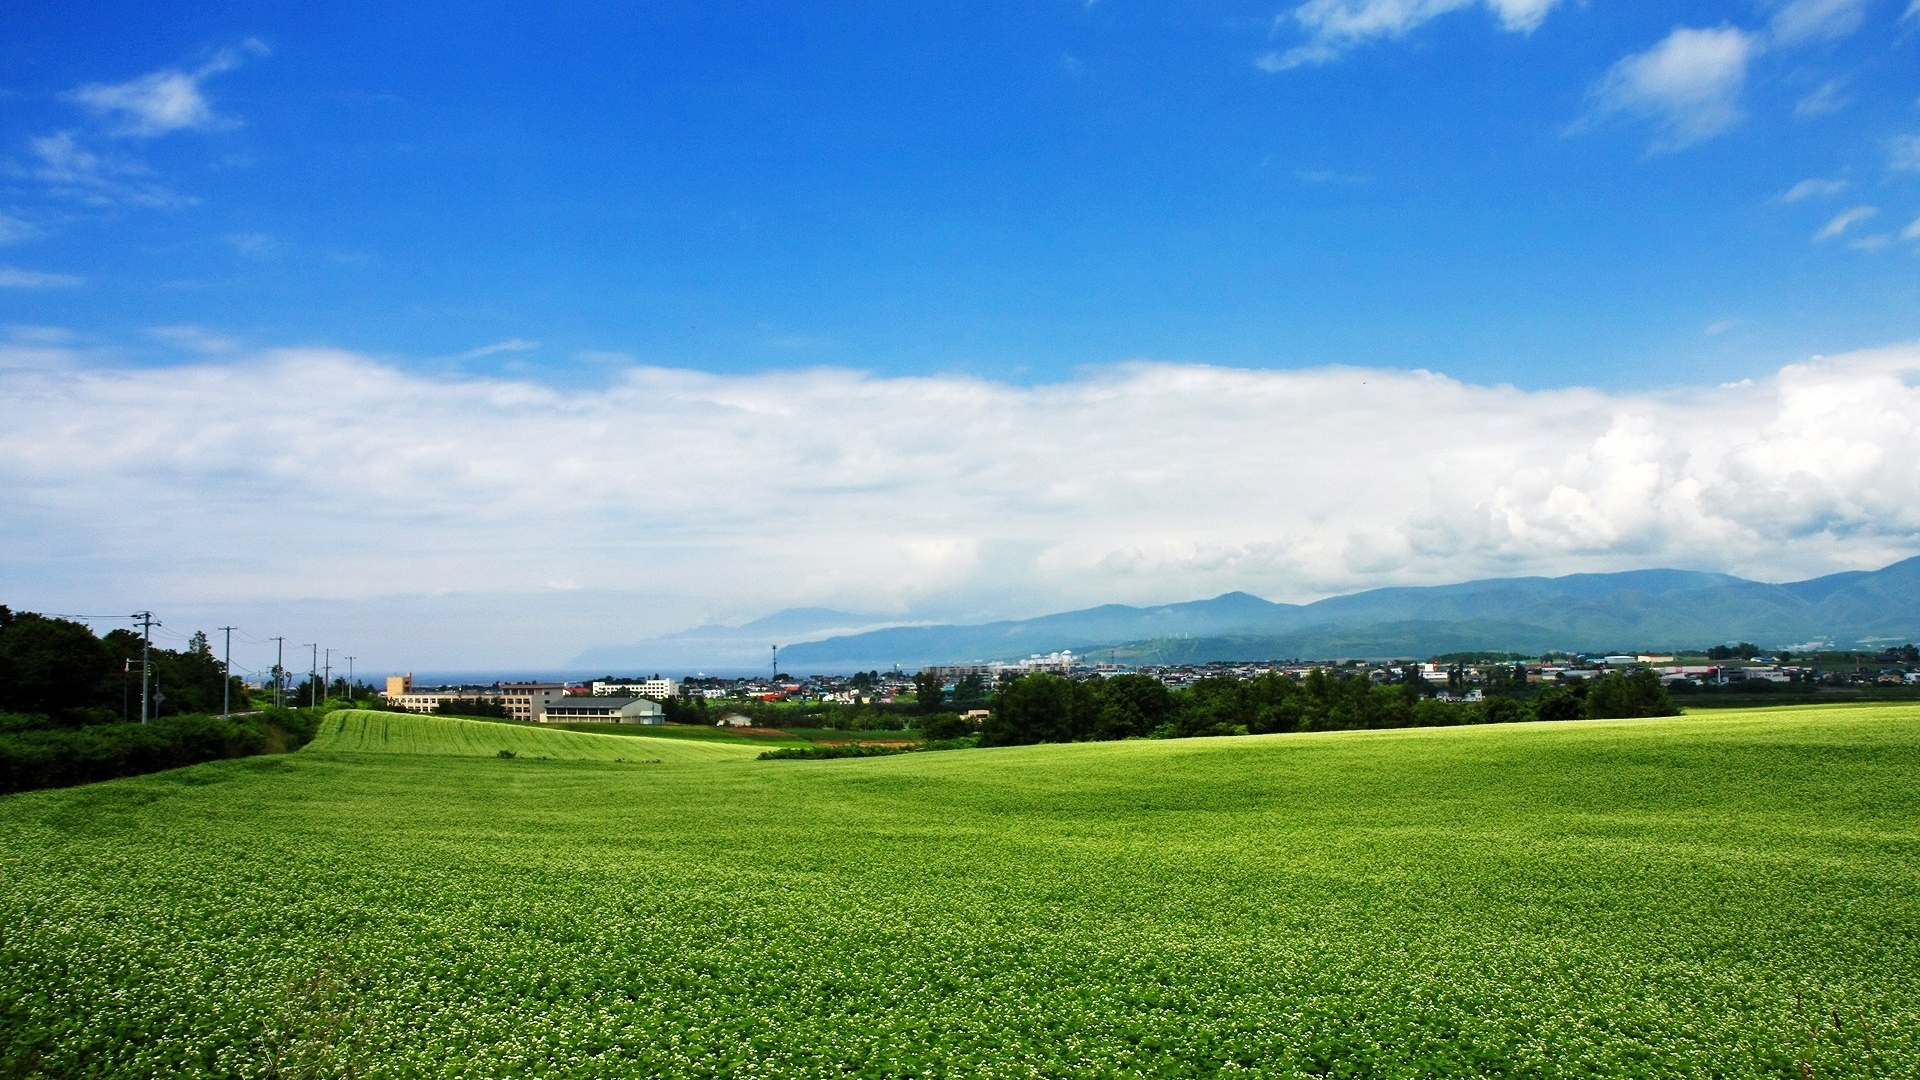 1920x1080 Wallpaper field, japan, plantation, summer, village